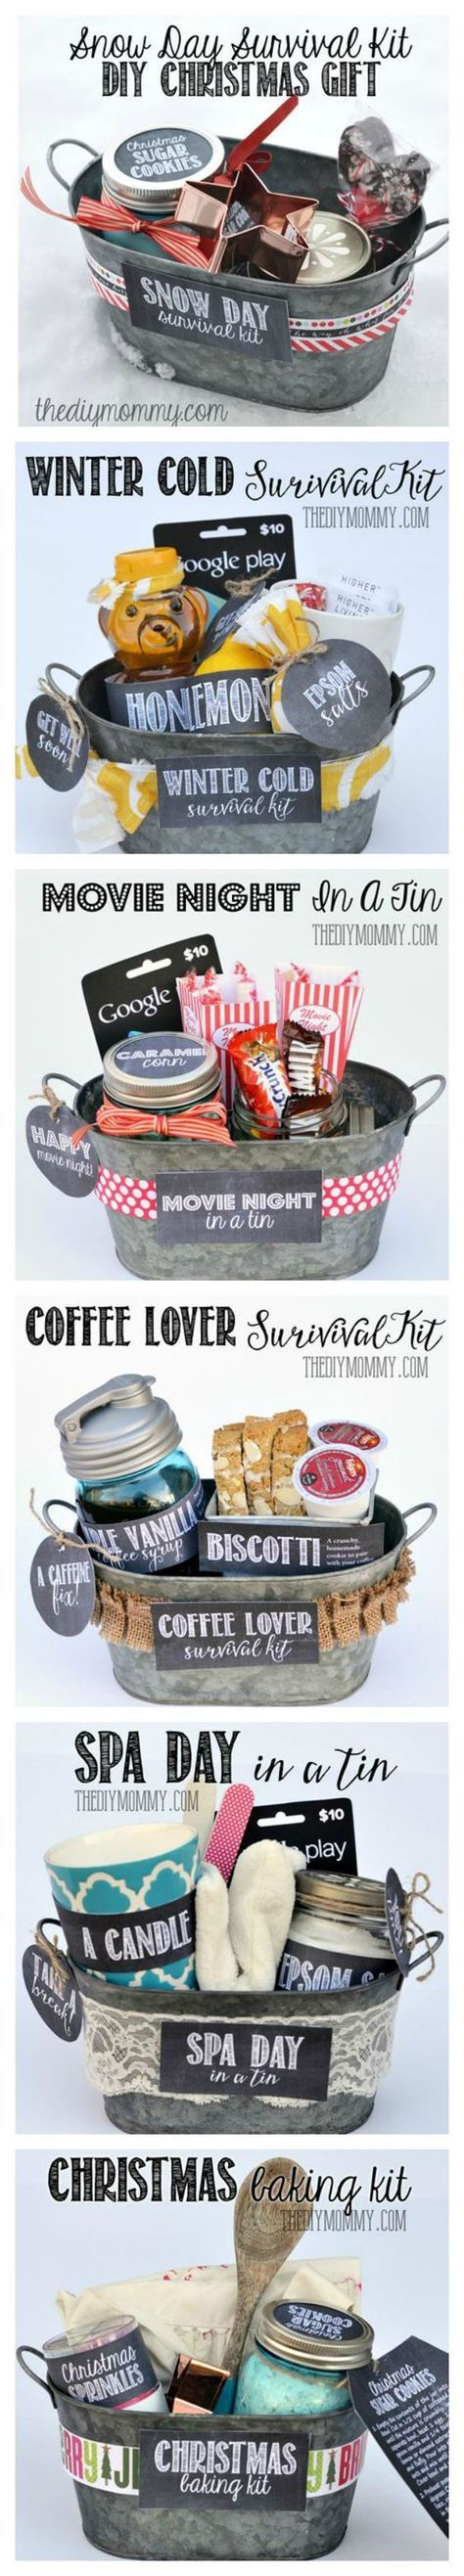 Do it yourself gift basket ideas for any and all occasions do it yourself gift basket ideas for any and all occasions ajndkok ajndktletek s karcsony solutioingenieria Image collections